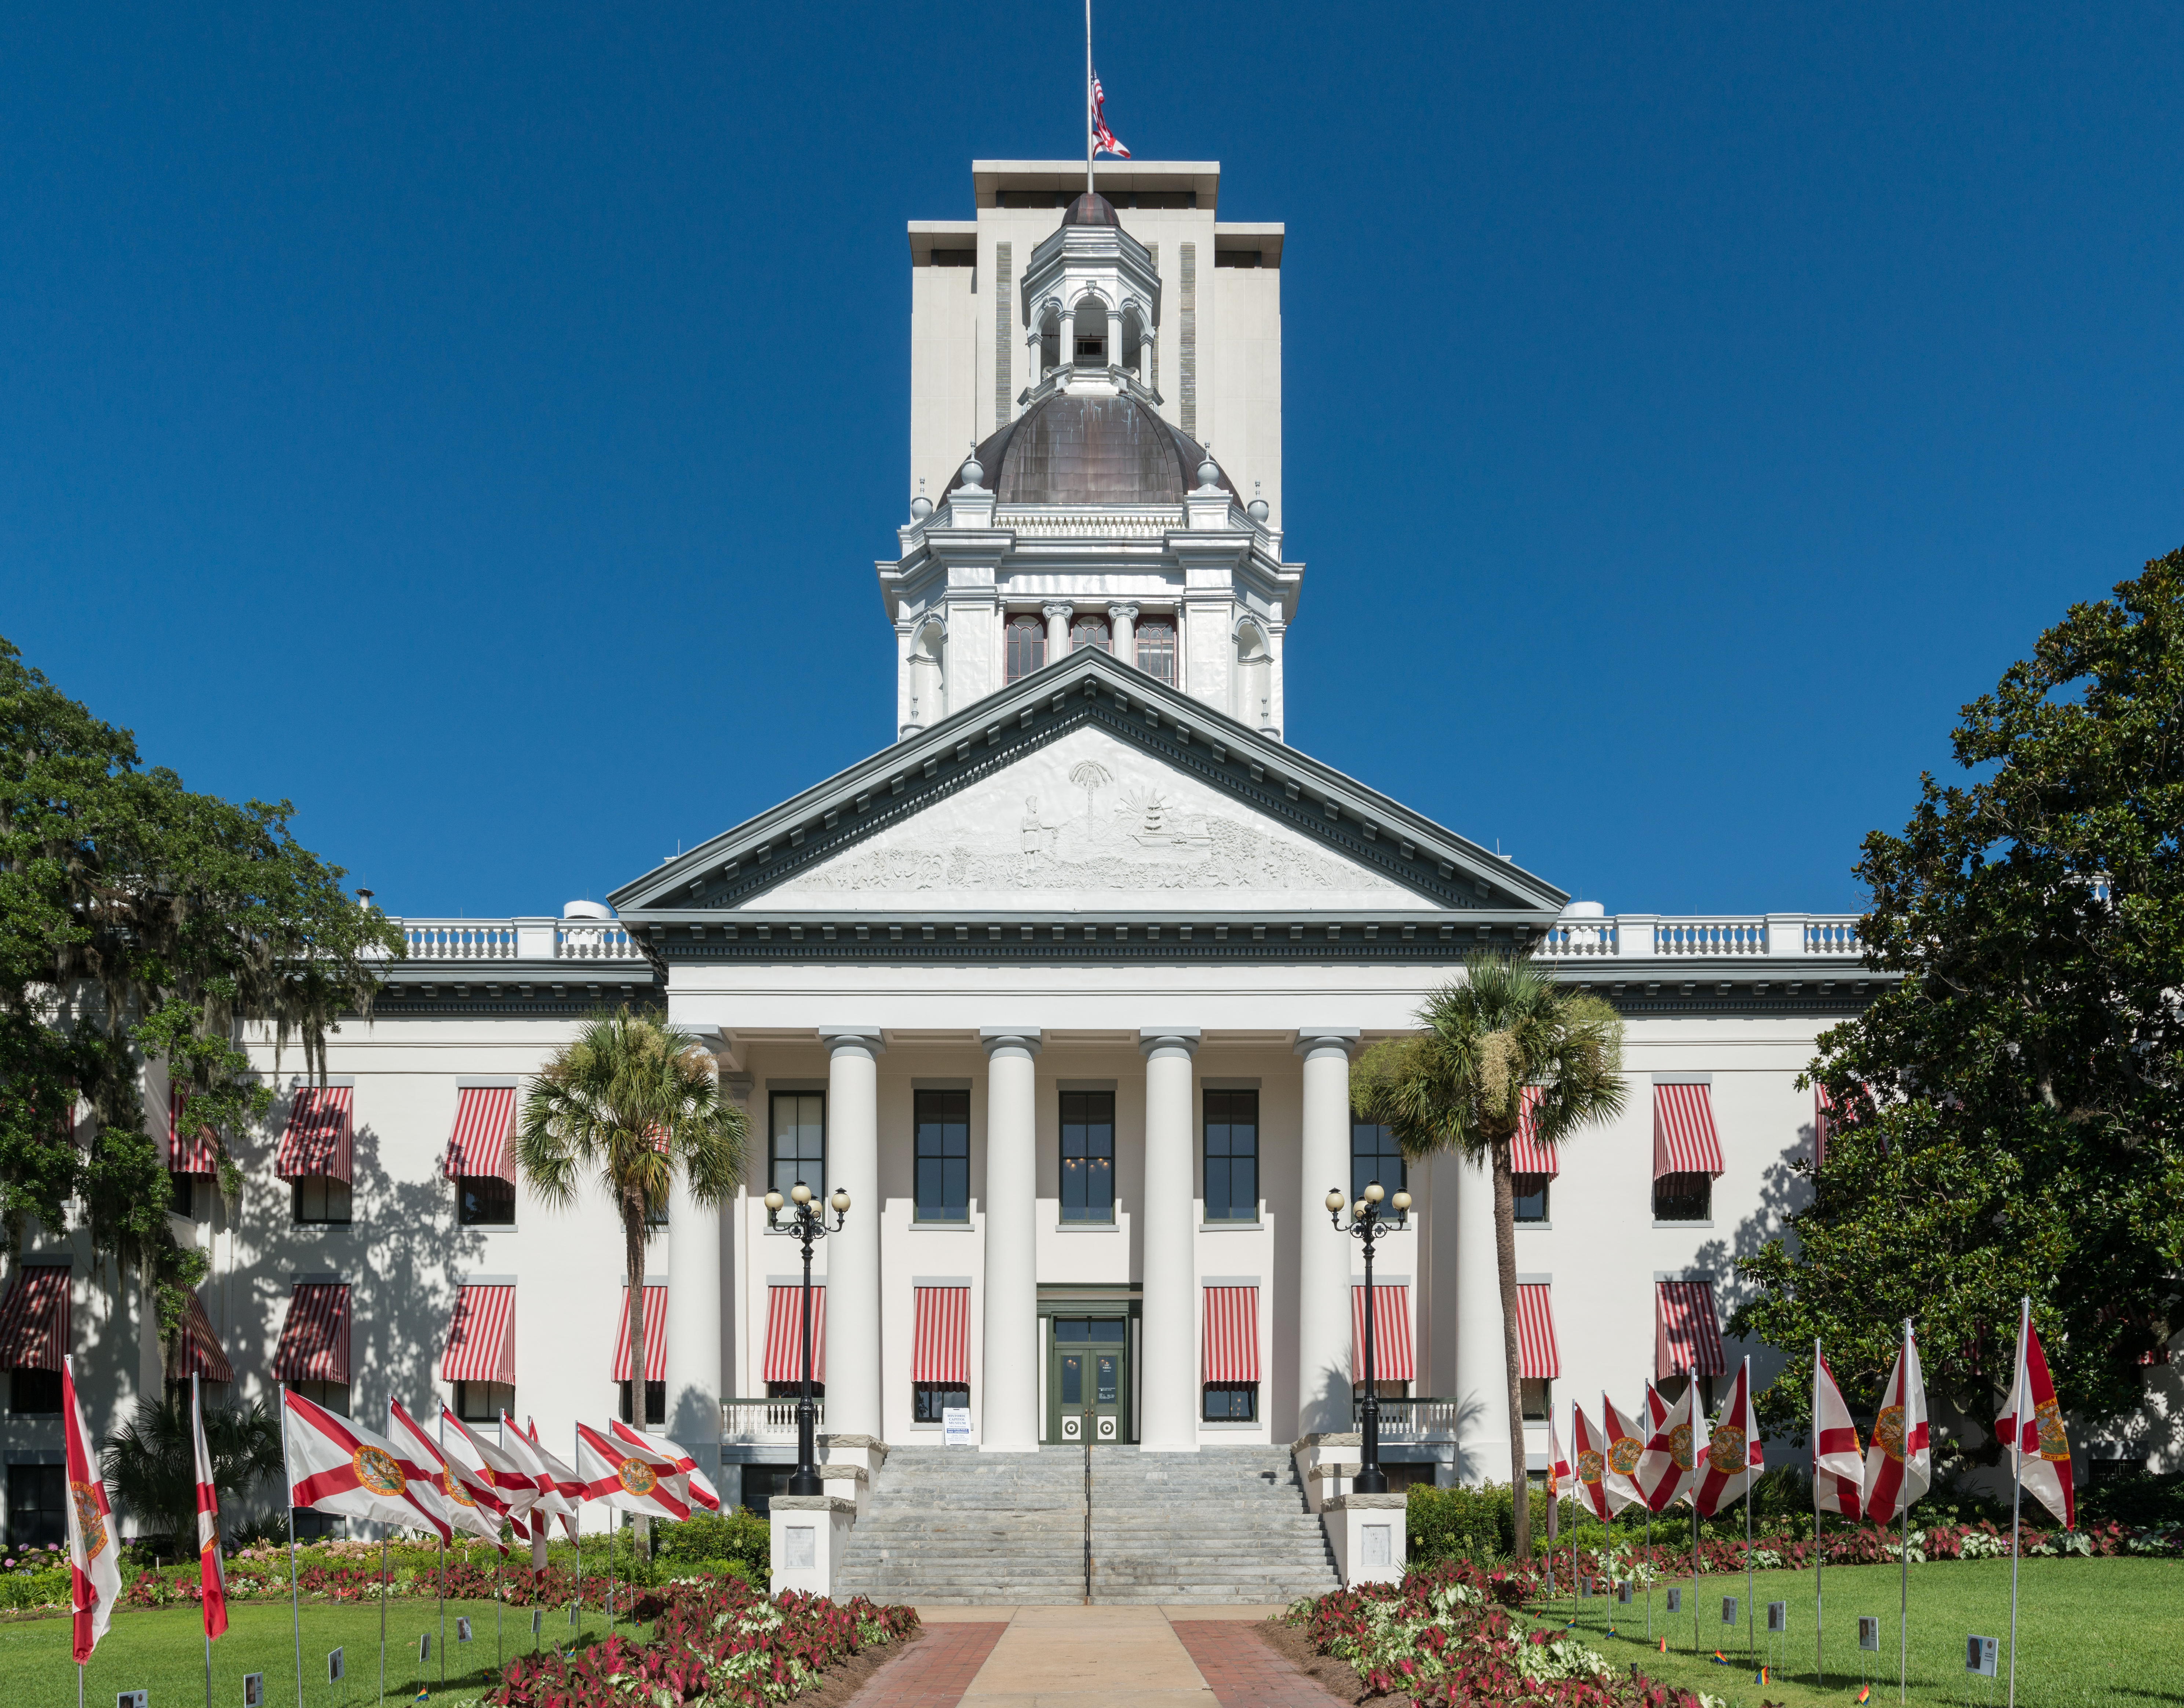 Florida State Capitol Building Tallahassee